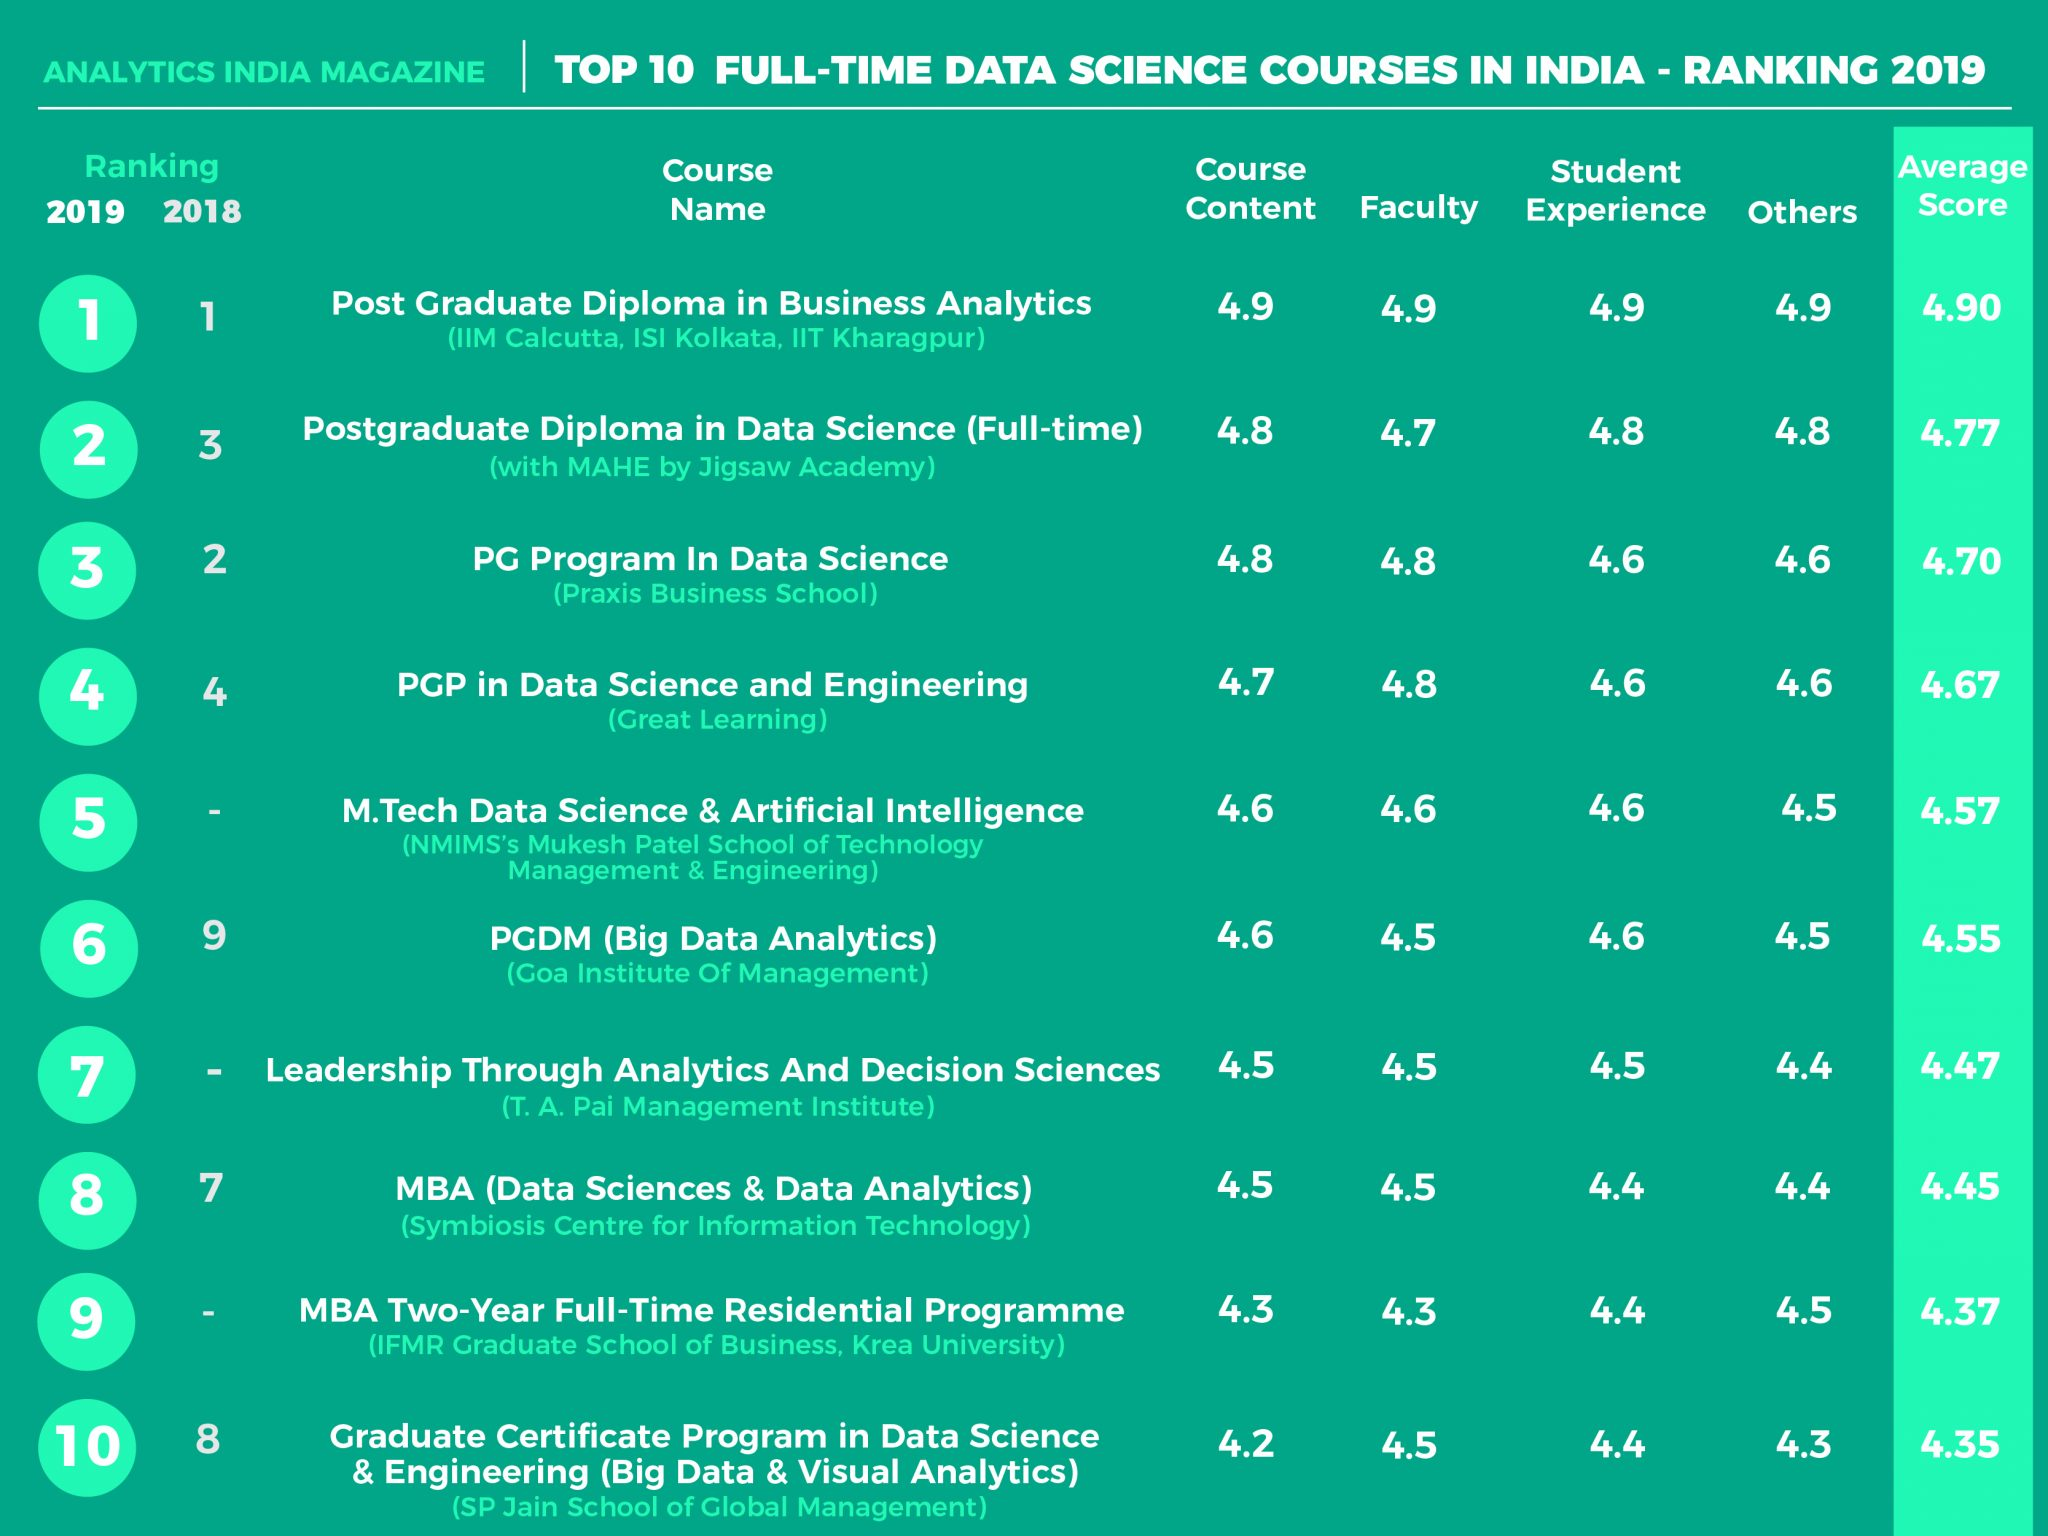 Top 10 Full Time Data Science Courses In India Ranking 2019